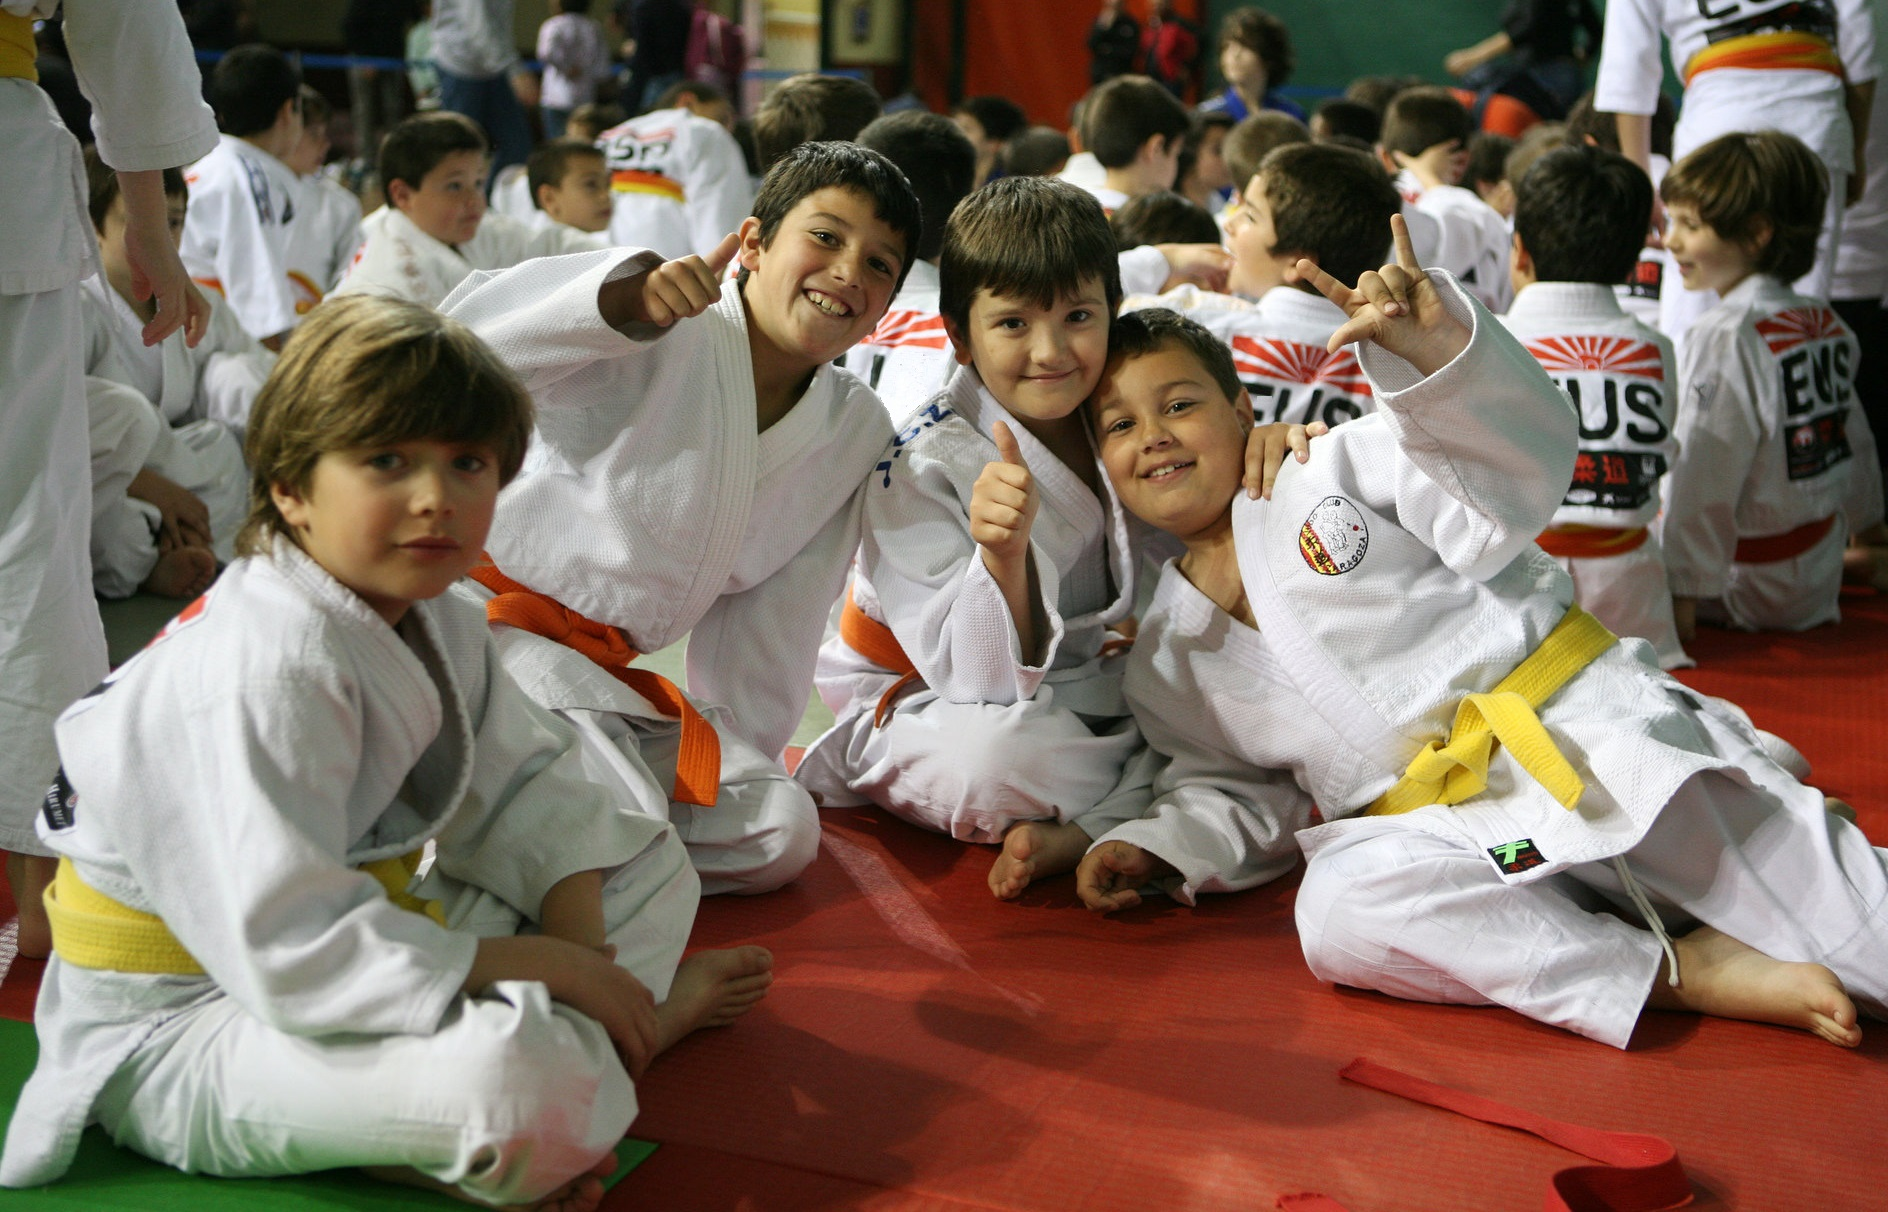 Kids in Judo Gi